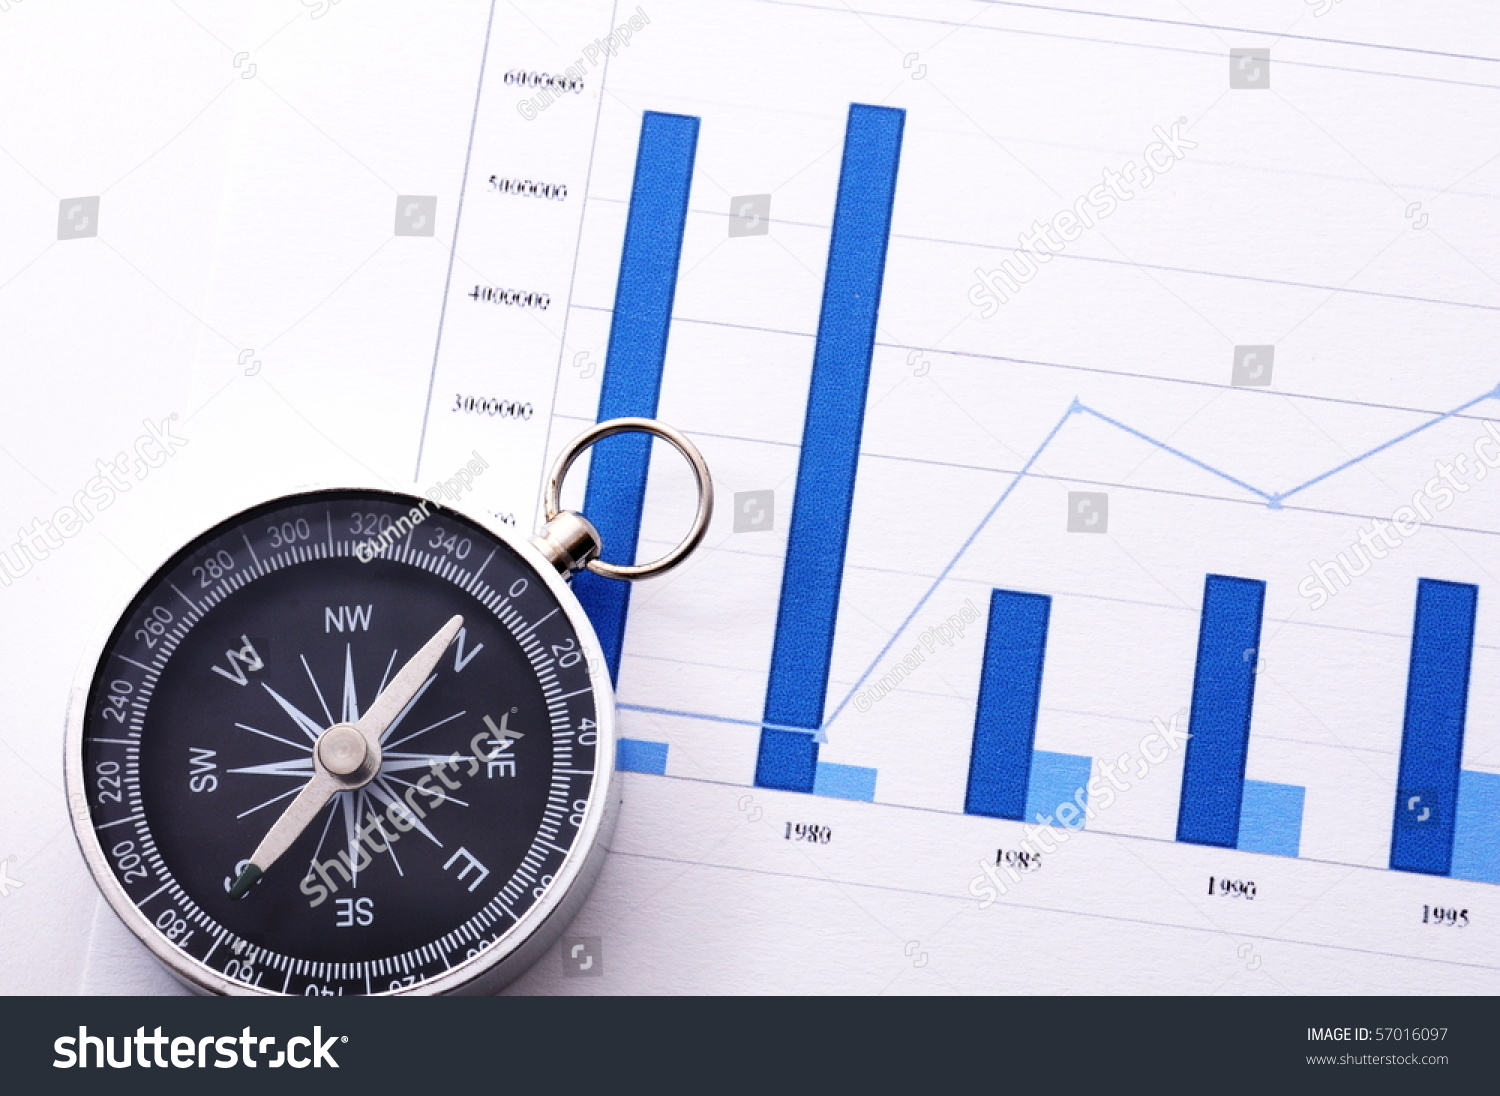 Business concept compass diagram chart stock photo 57016097 business concept with compass and diagram or chart pooptronica